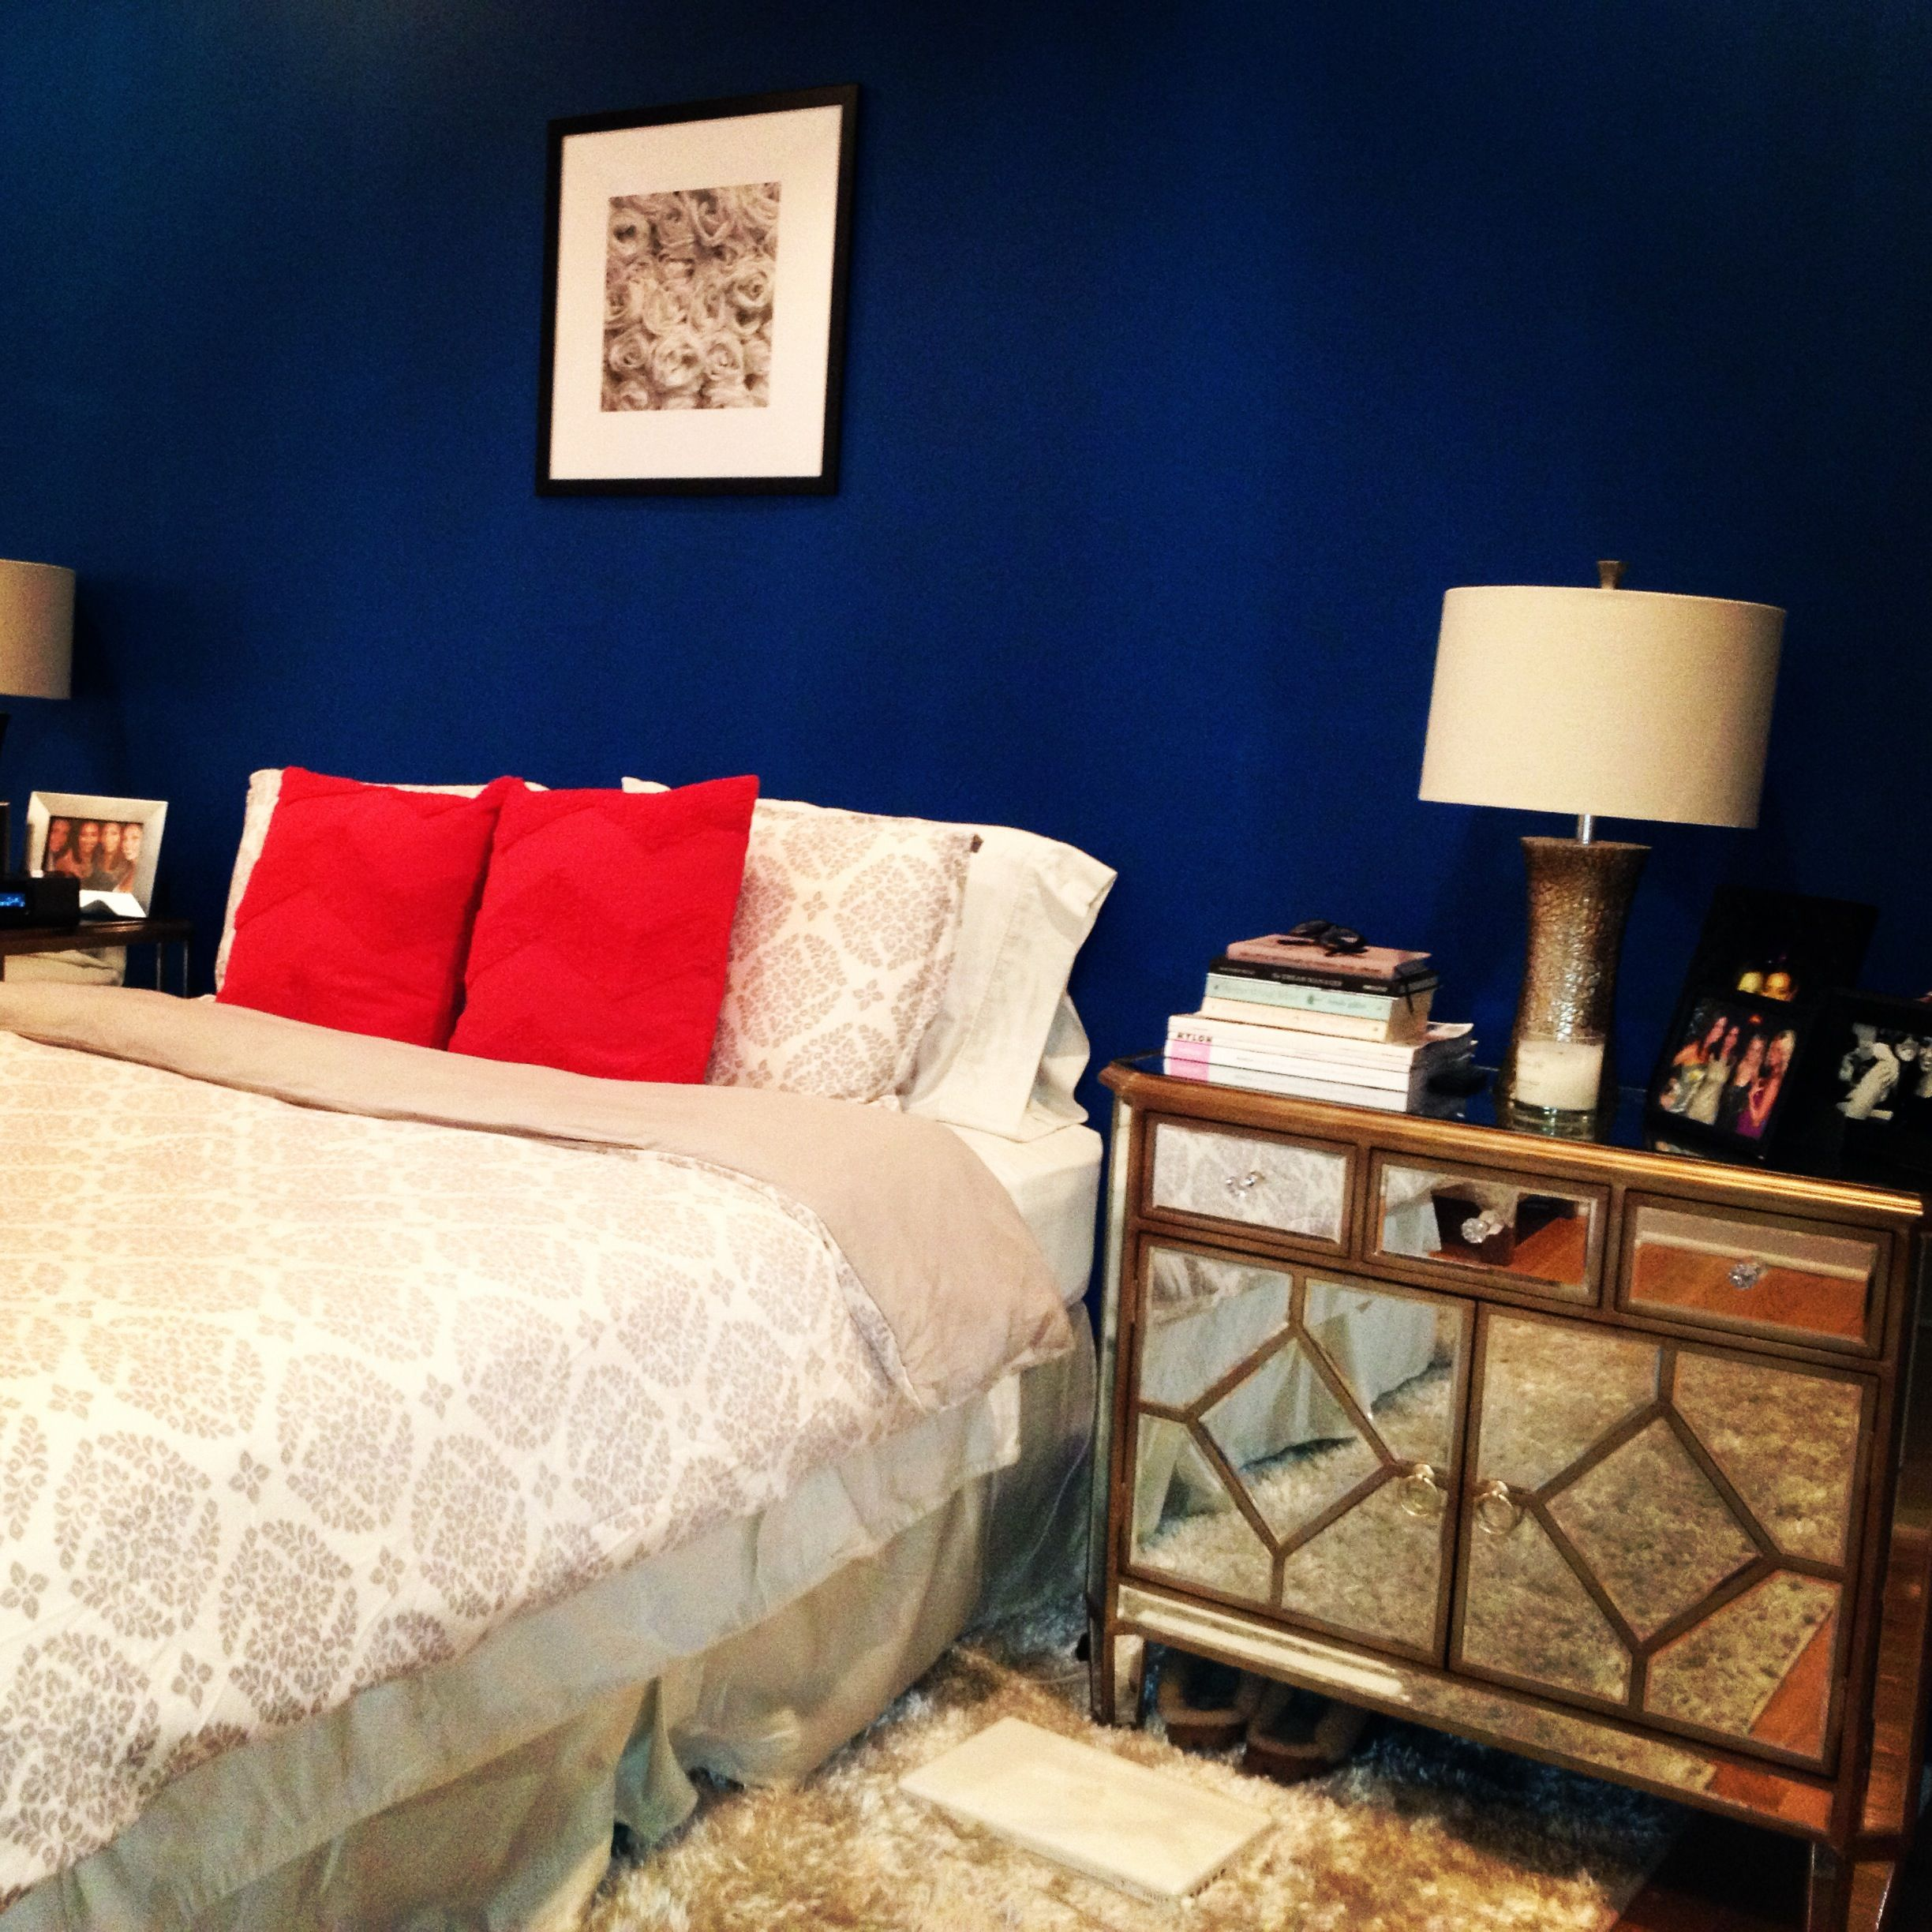 Accent Wall Sleight Blue: Blue Accent Walls, Home Decor, Decor